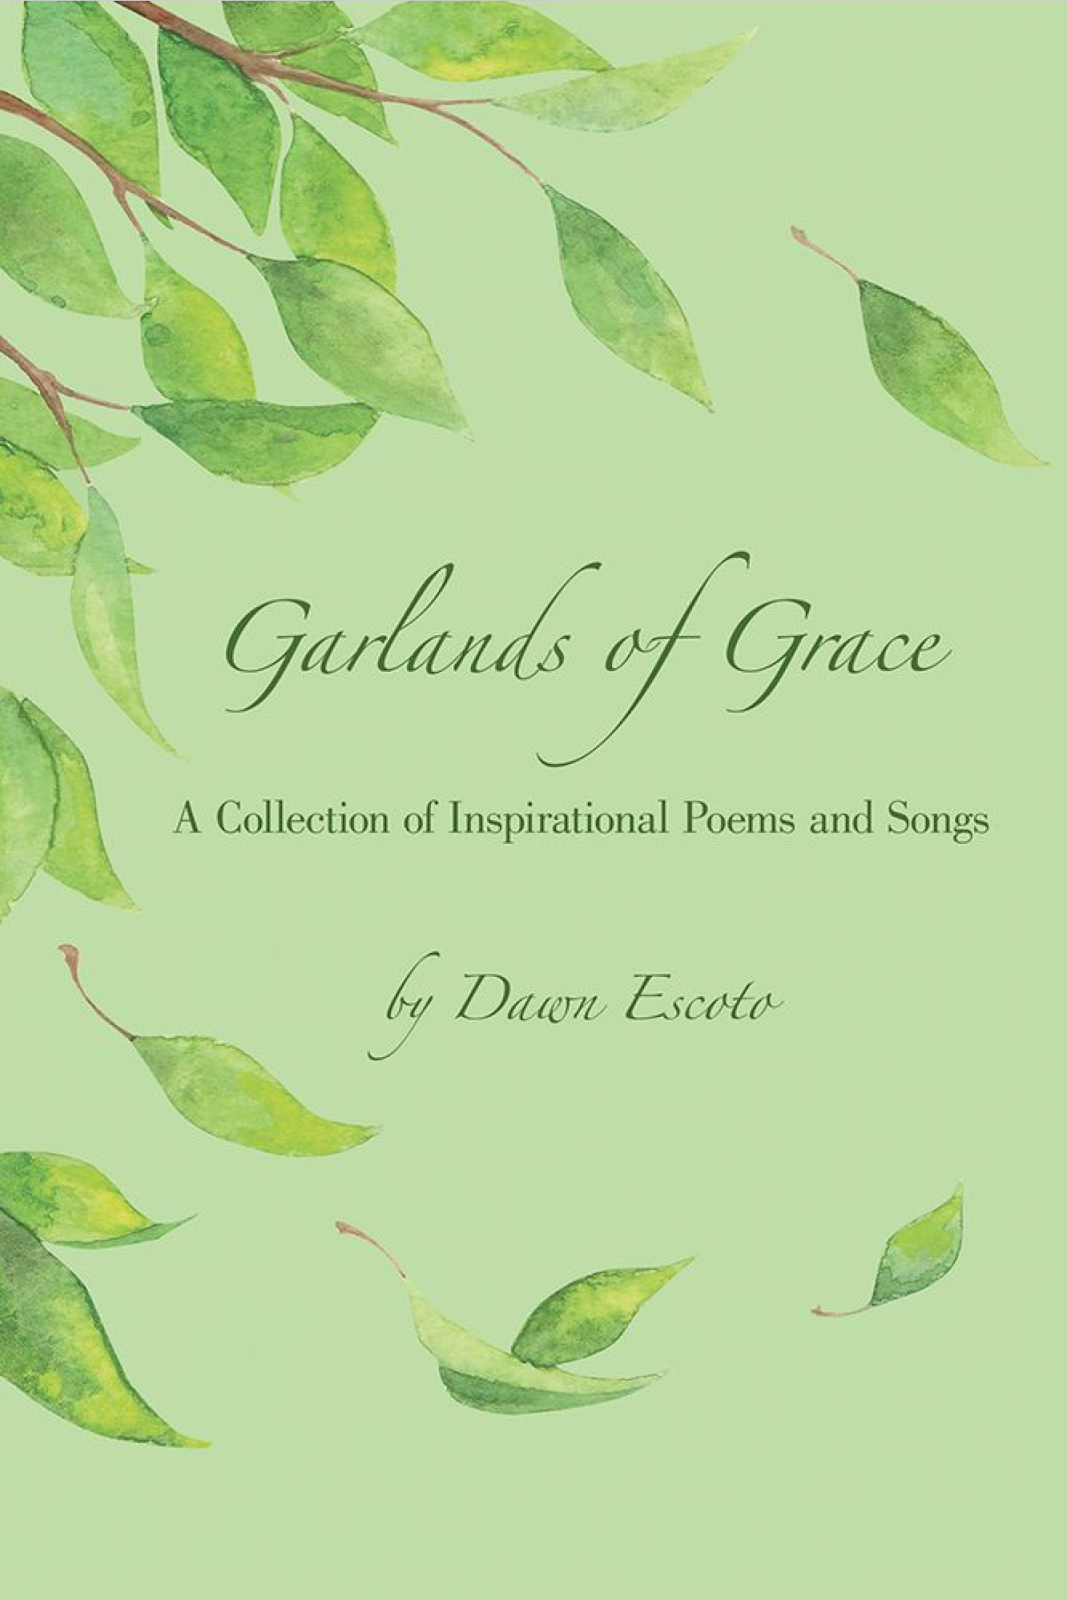 http://www.amazon.com/Garlands-Grace-Collection-Inspirational-Poems-ebook/dp/B00T6CSVUO/ref=sr_1_1?s=digital-text&ie=UTF8&qid=1423422968&sr=1-1